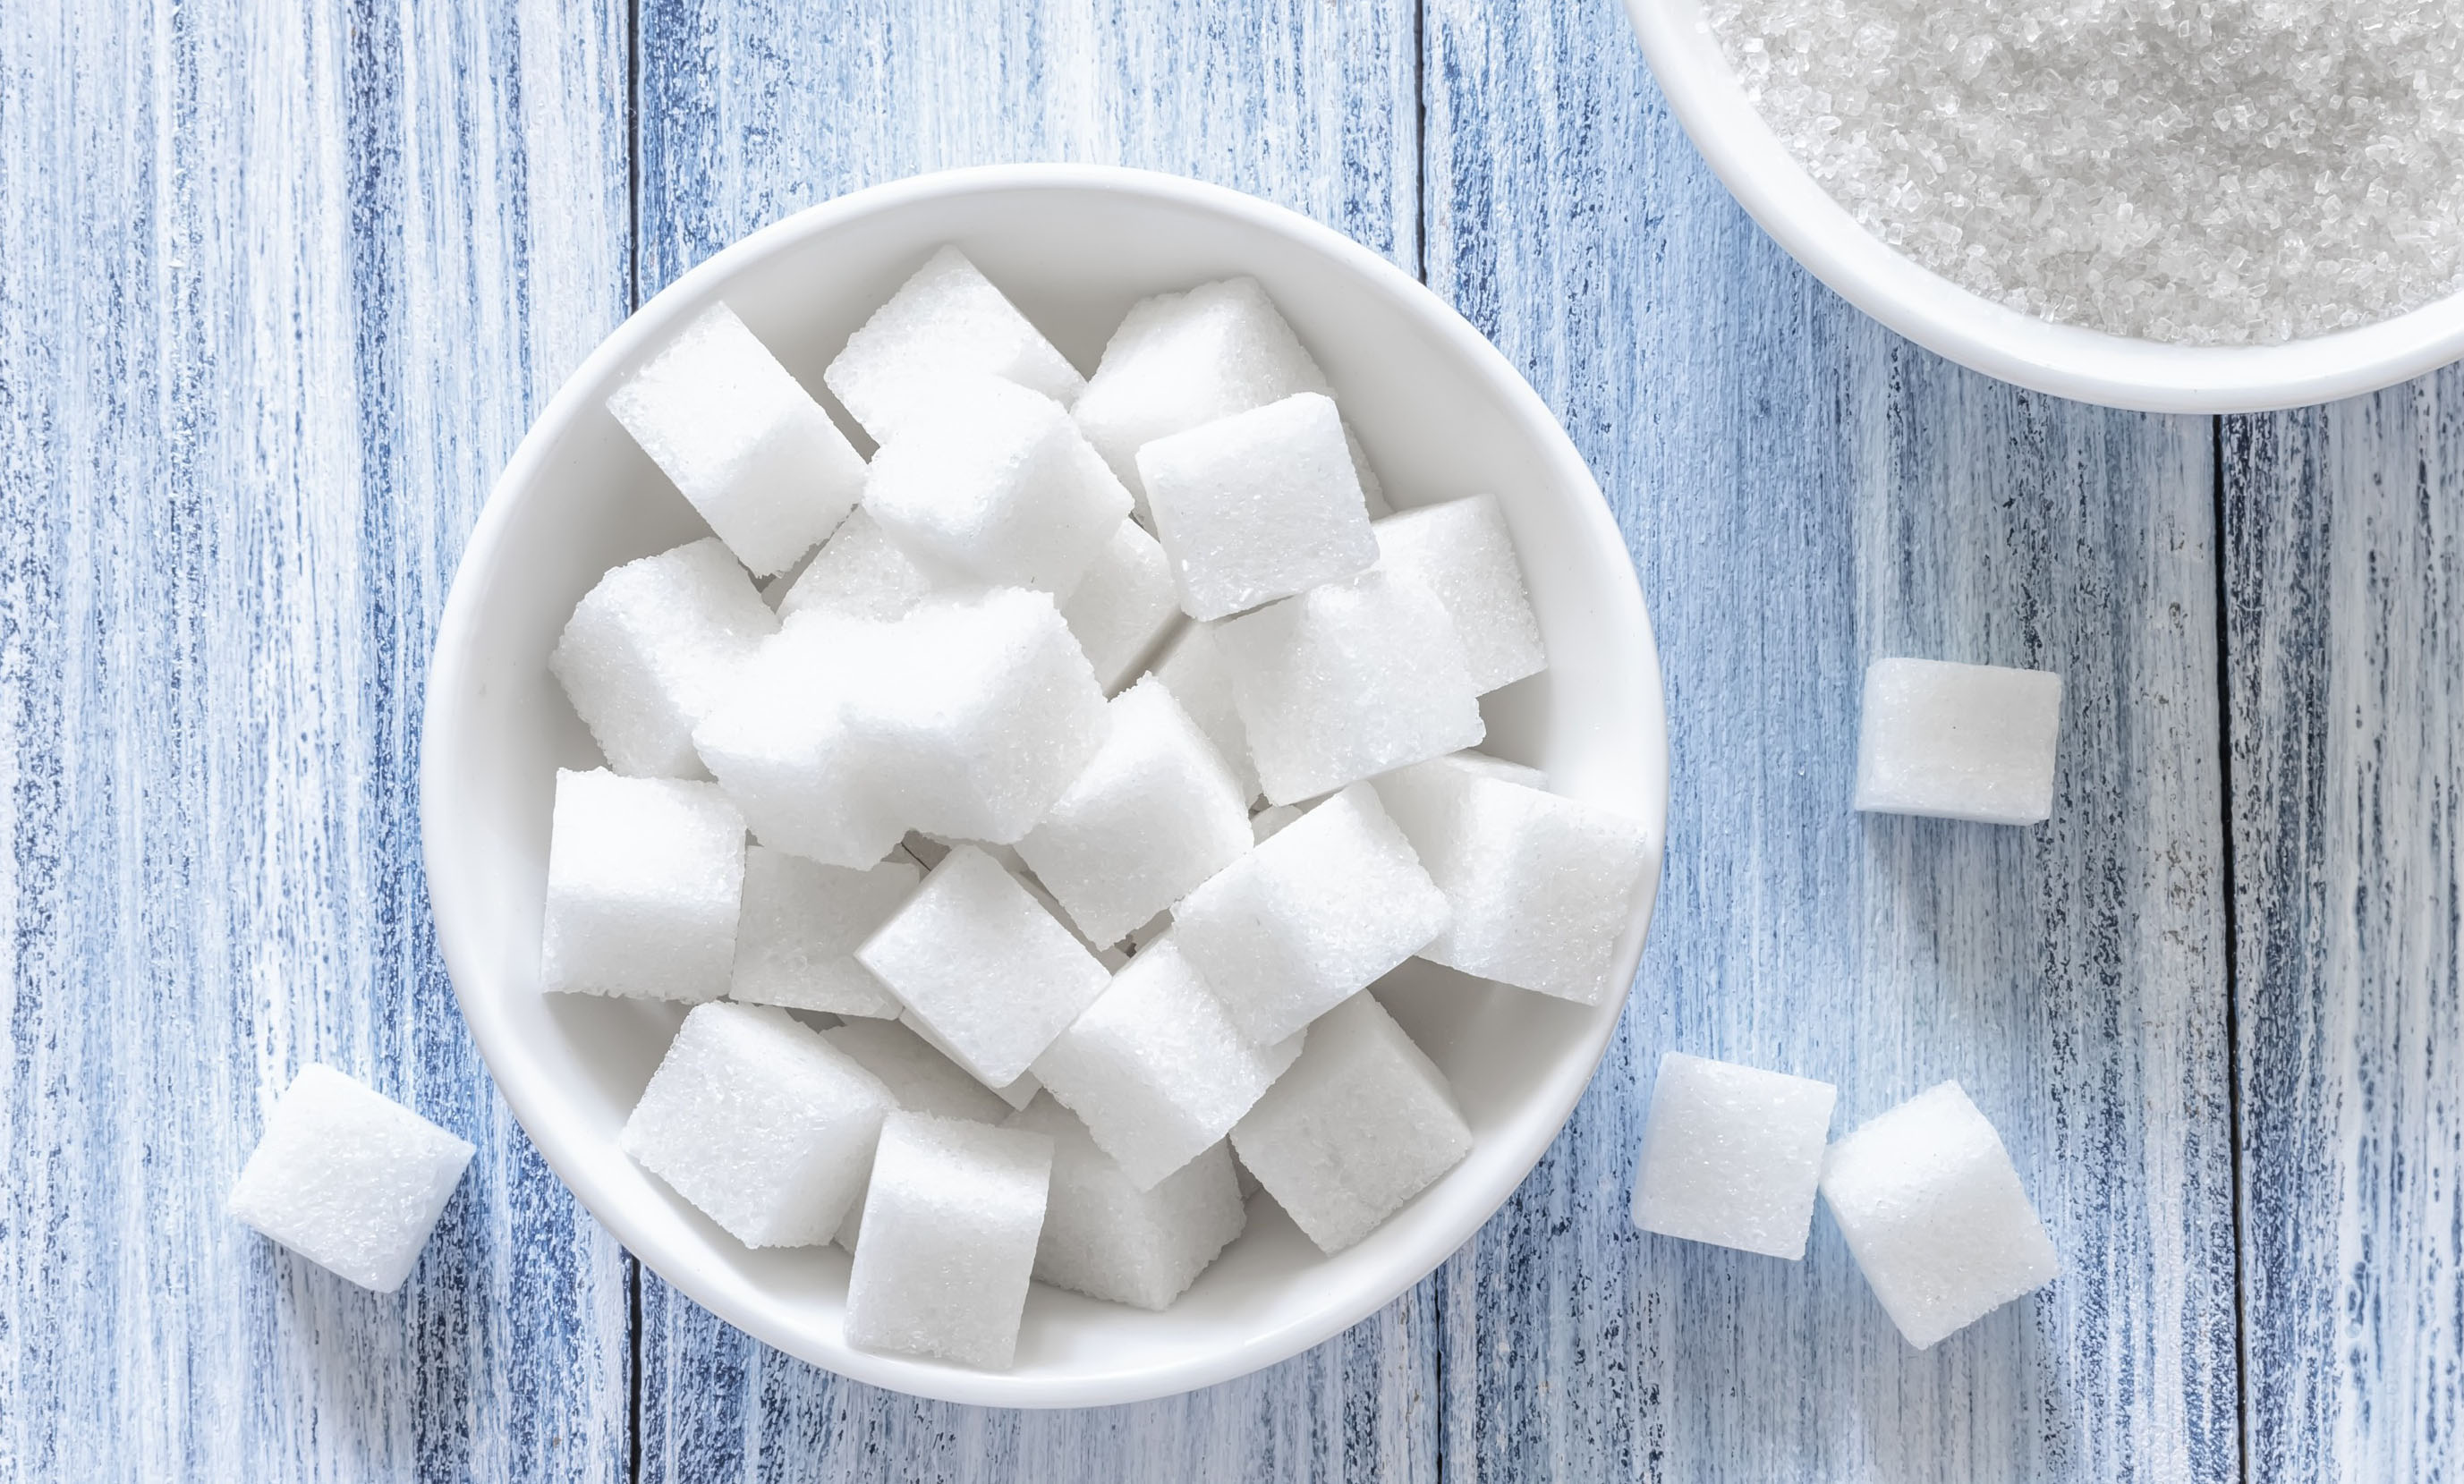 What Is Healthier: Natural Sugar, Table Sugar Or Artificial Sweeteners?